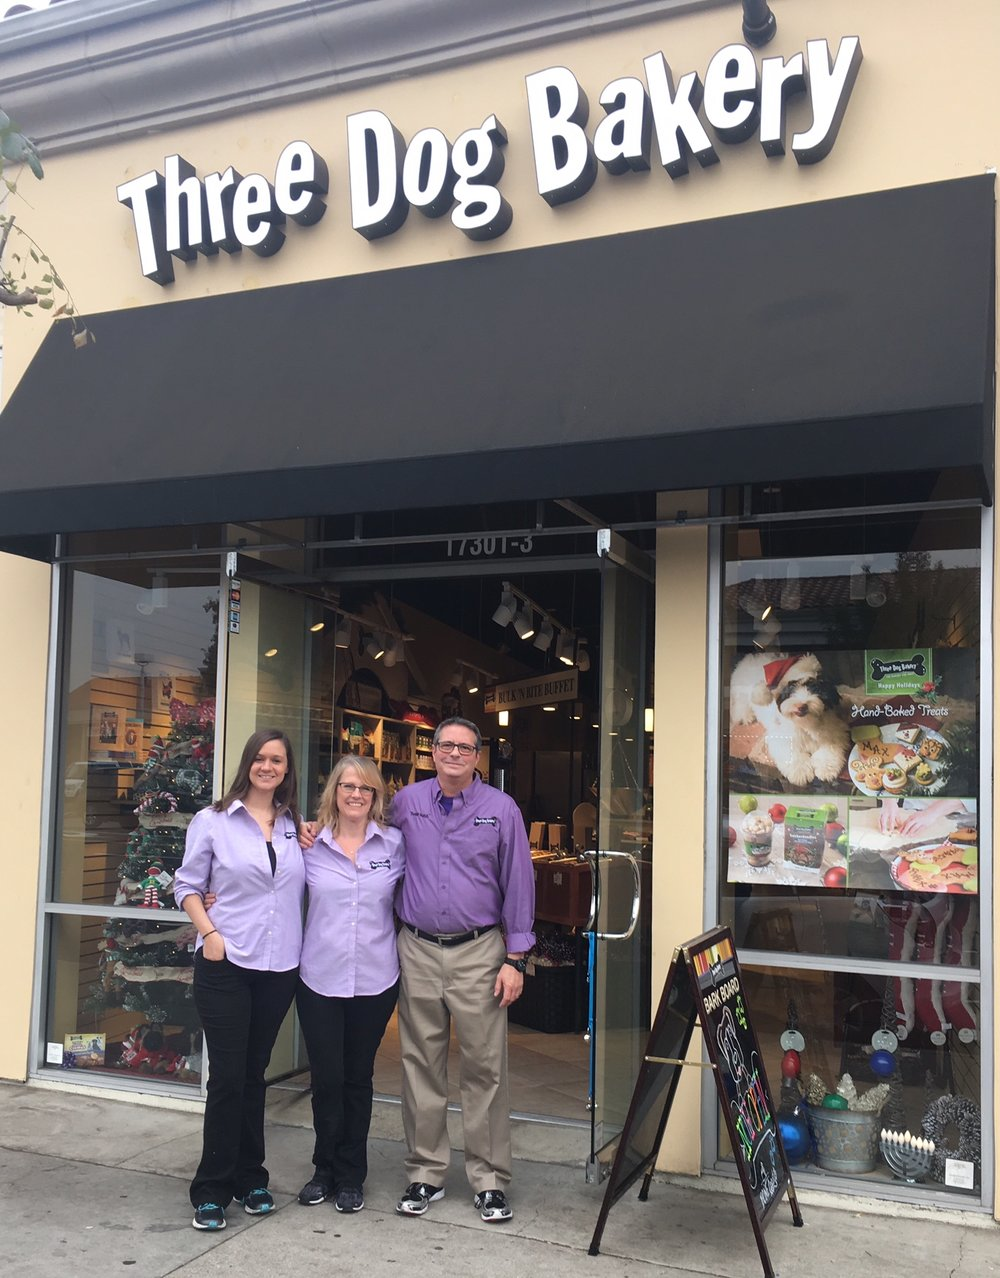 Joe Coffee + Three Dog Bakery - Joe Coffee has partnered with Three Dog Bakery in Encino, California, to provide our furry friends with fresh baked treats! Stop by Joe Coffee and check out our selection... At Joe Coffee, furry or human, we're all best friends!